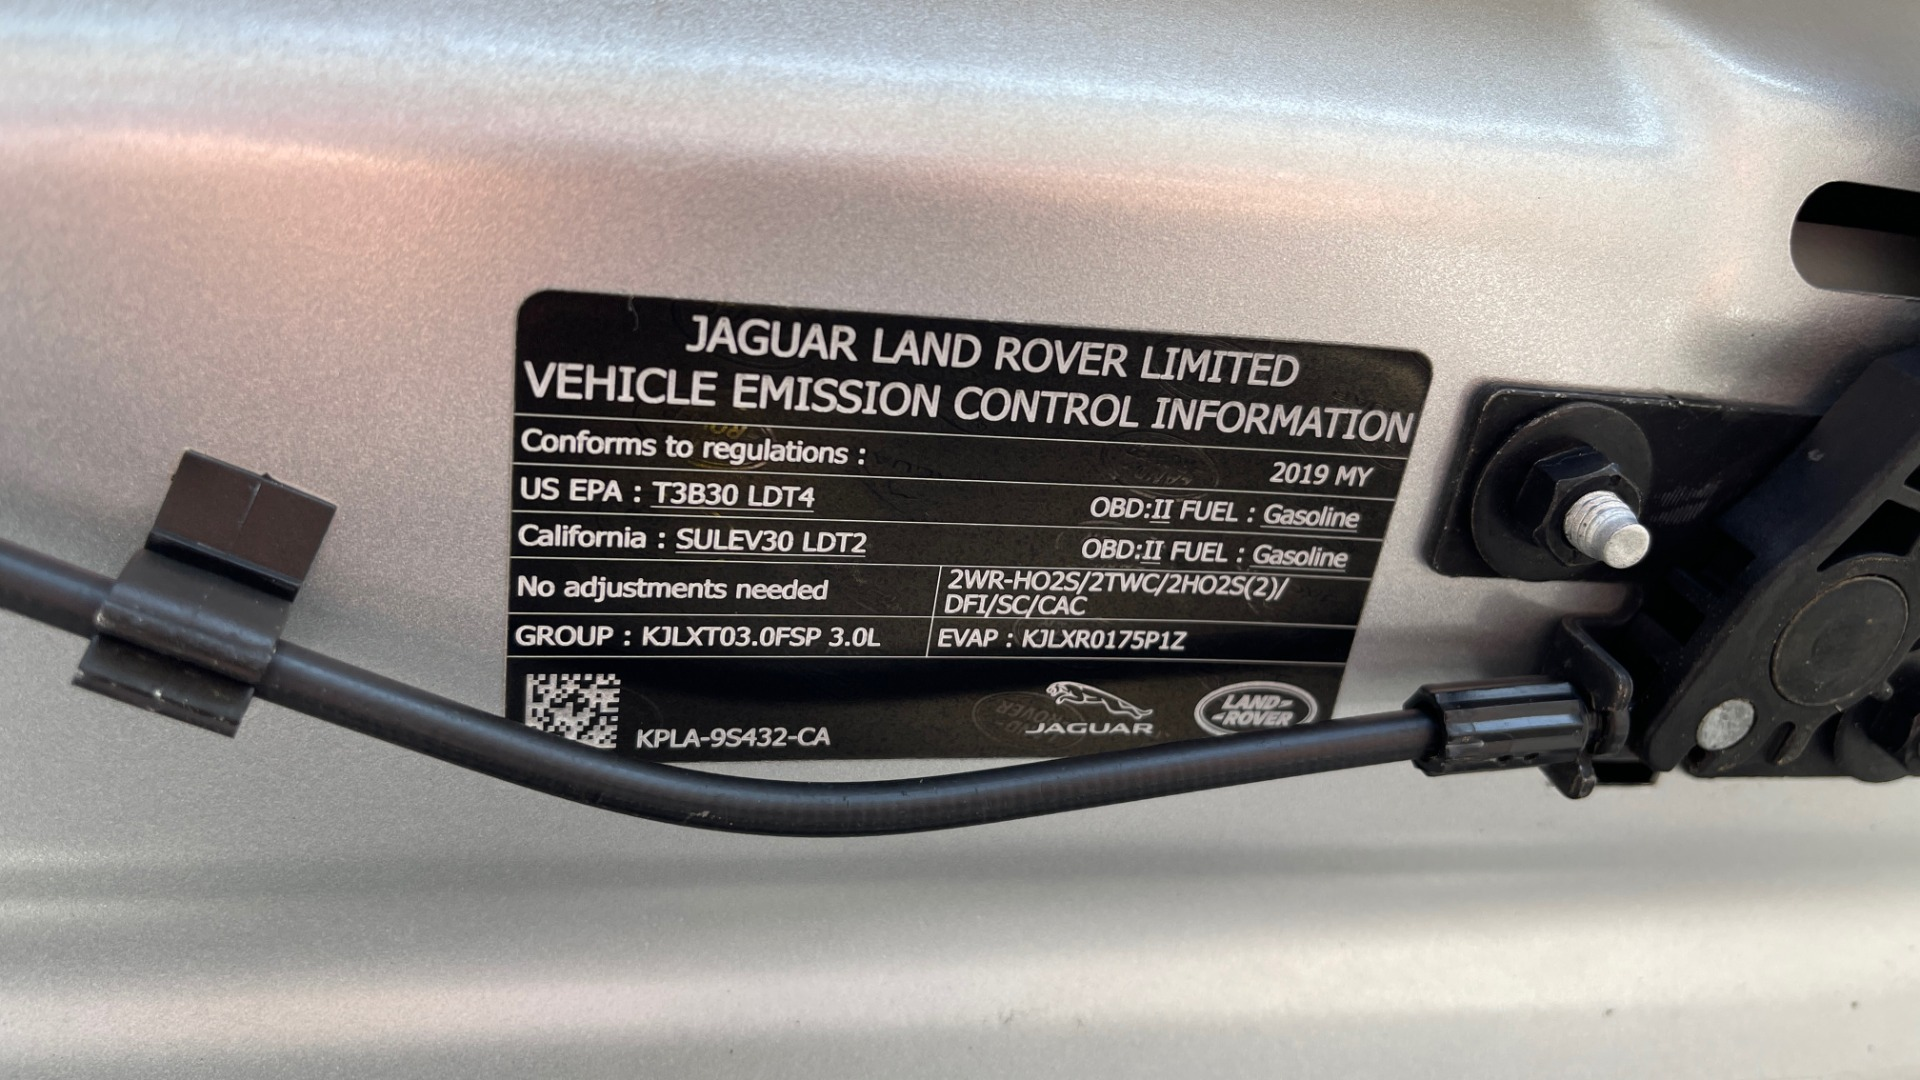 Used 2019 Land Rover RANGE ROVER SPORT HSE DYNAMIC / 3.0L SC V6 / 8-SPD / APPLE / NAV / SUNROOF / REARVIEW for sale Sold at Formula Imports in Charlotte NC 28227 19